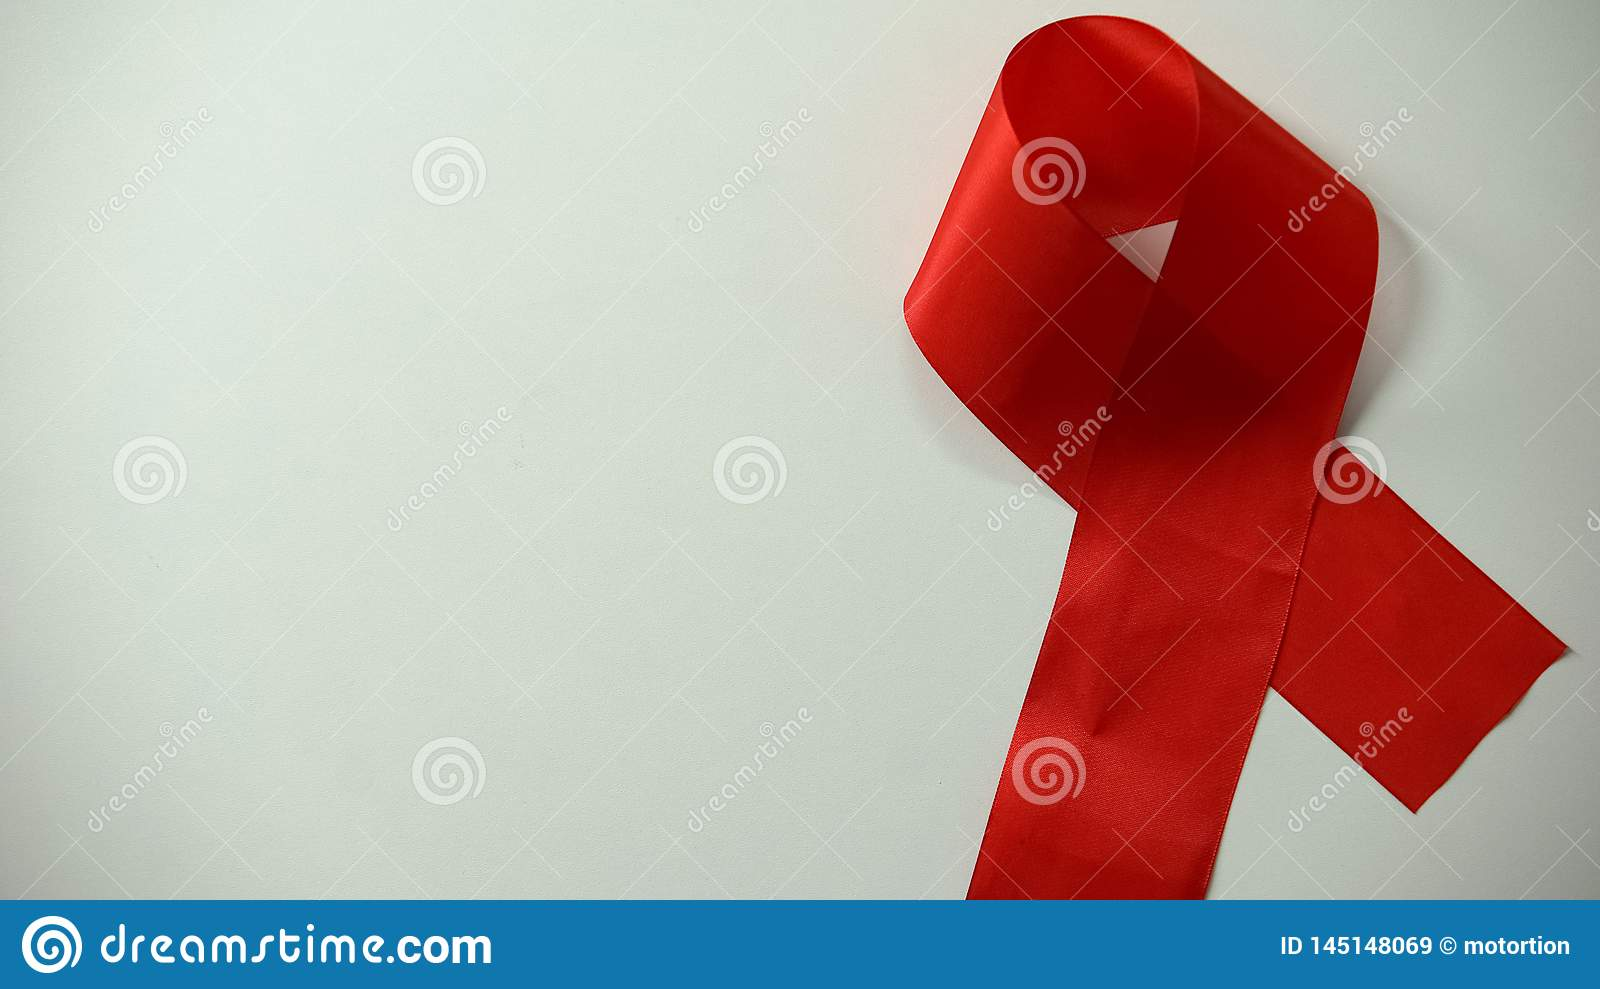 Red ribbon lying on table, AIDS awareness and prevention, healthcare, campaign